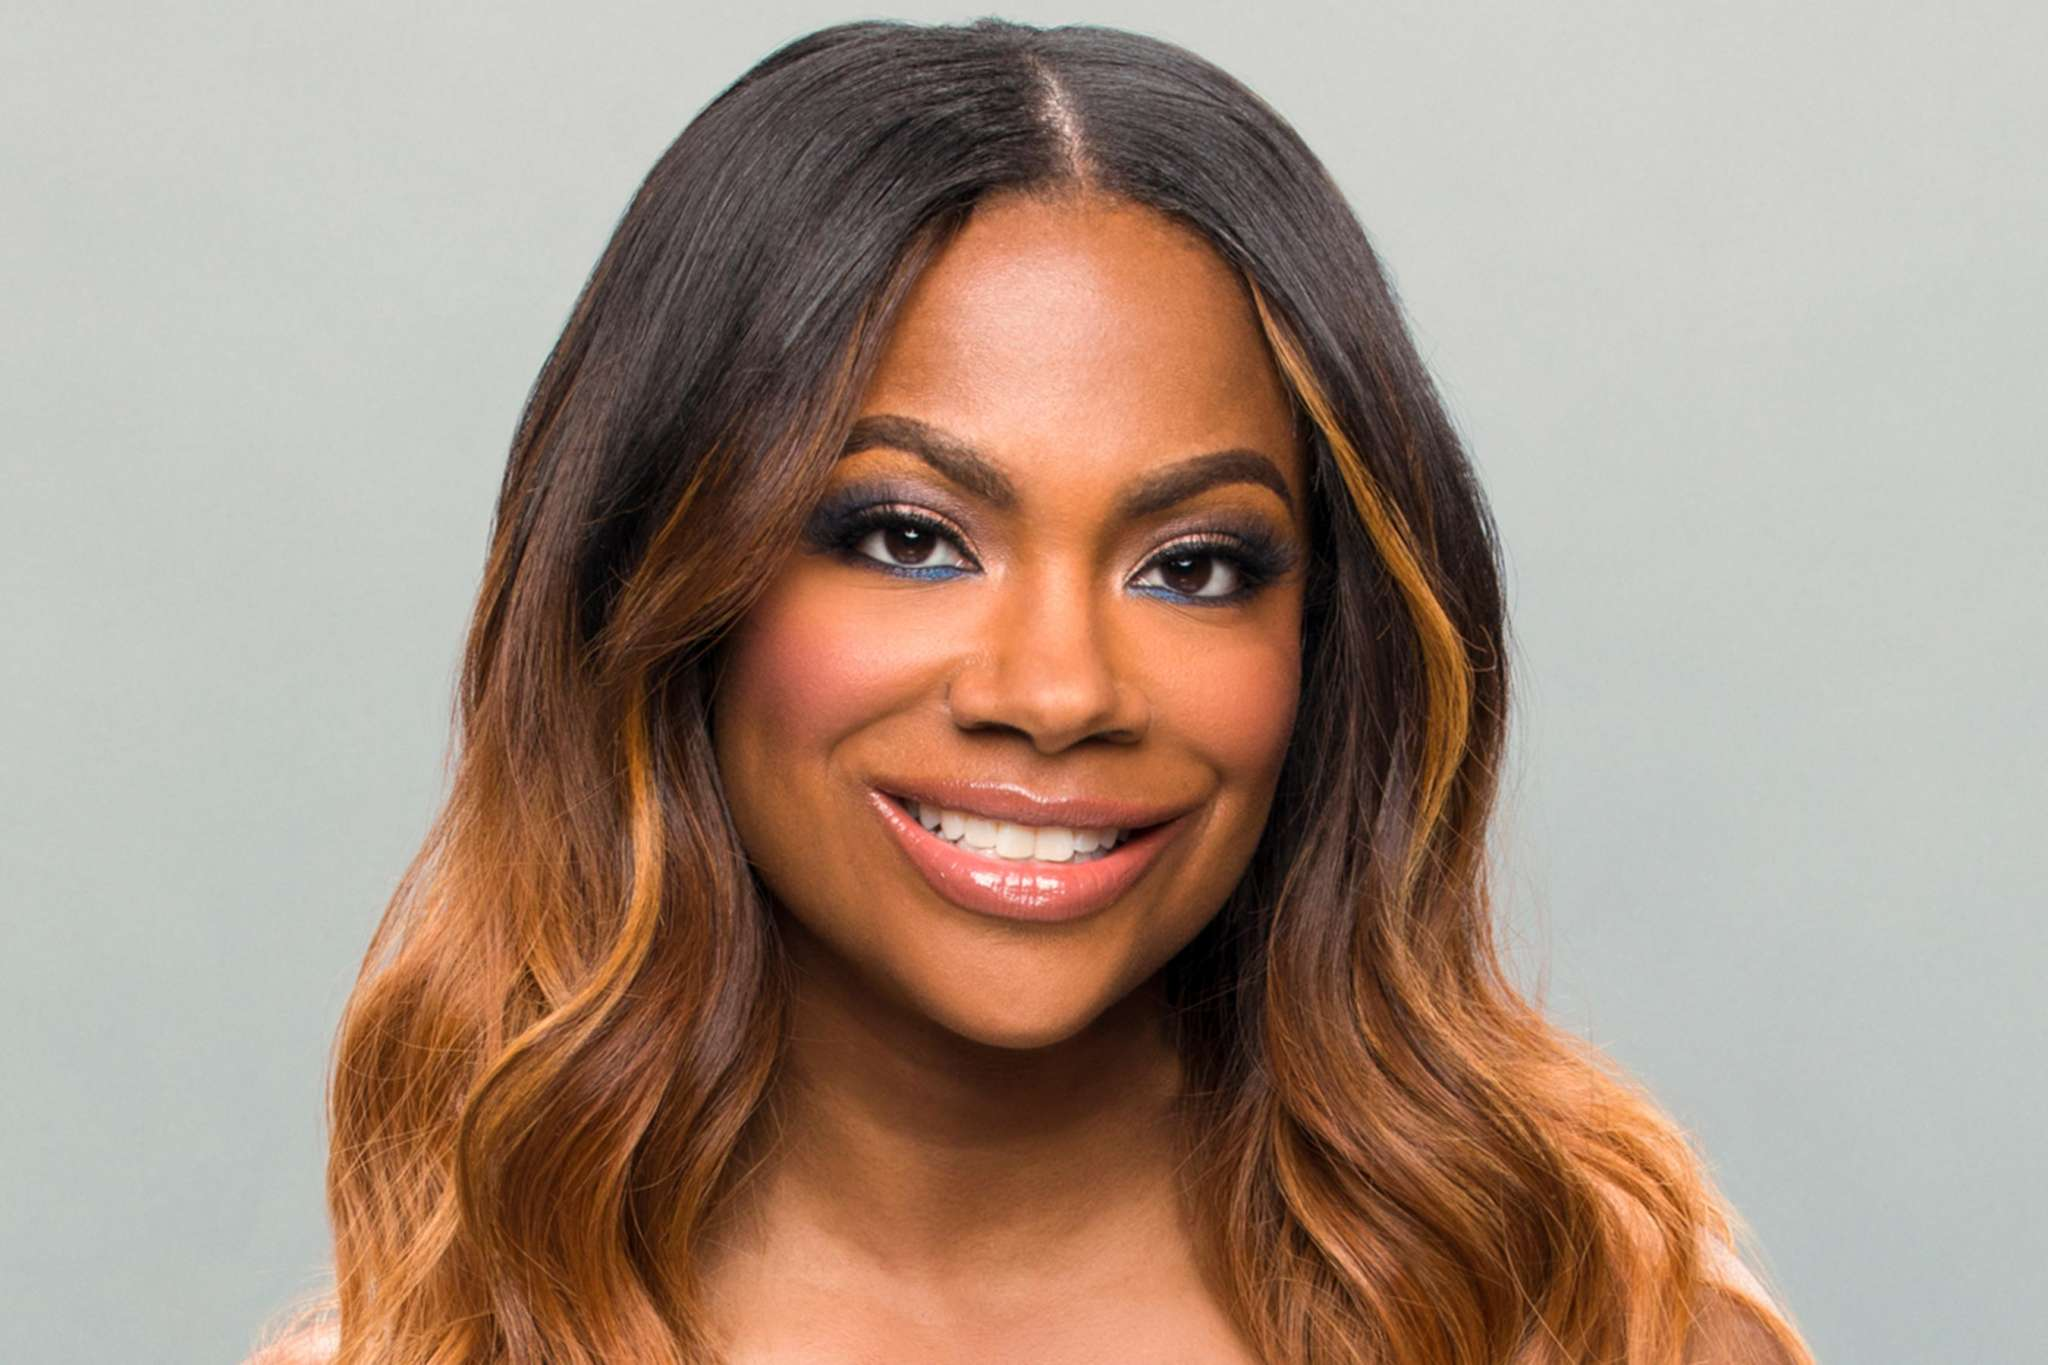 """kandi-burruss-fans-believe-she-needs-more-rewards-and-recognition"""